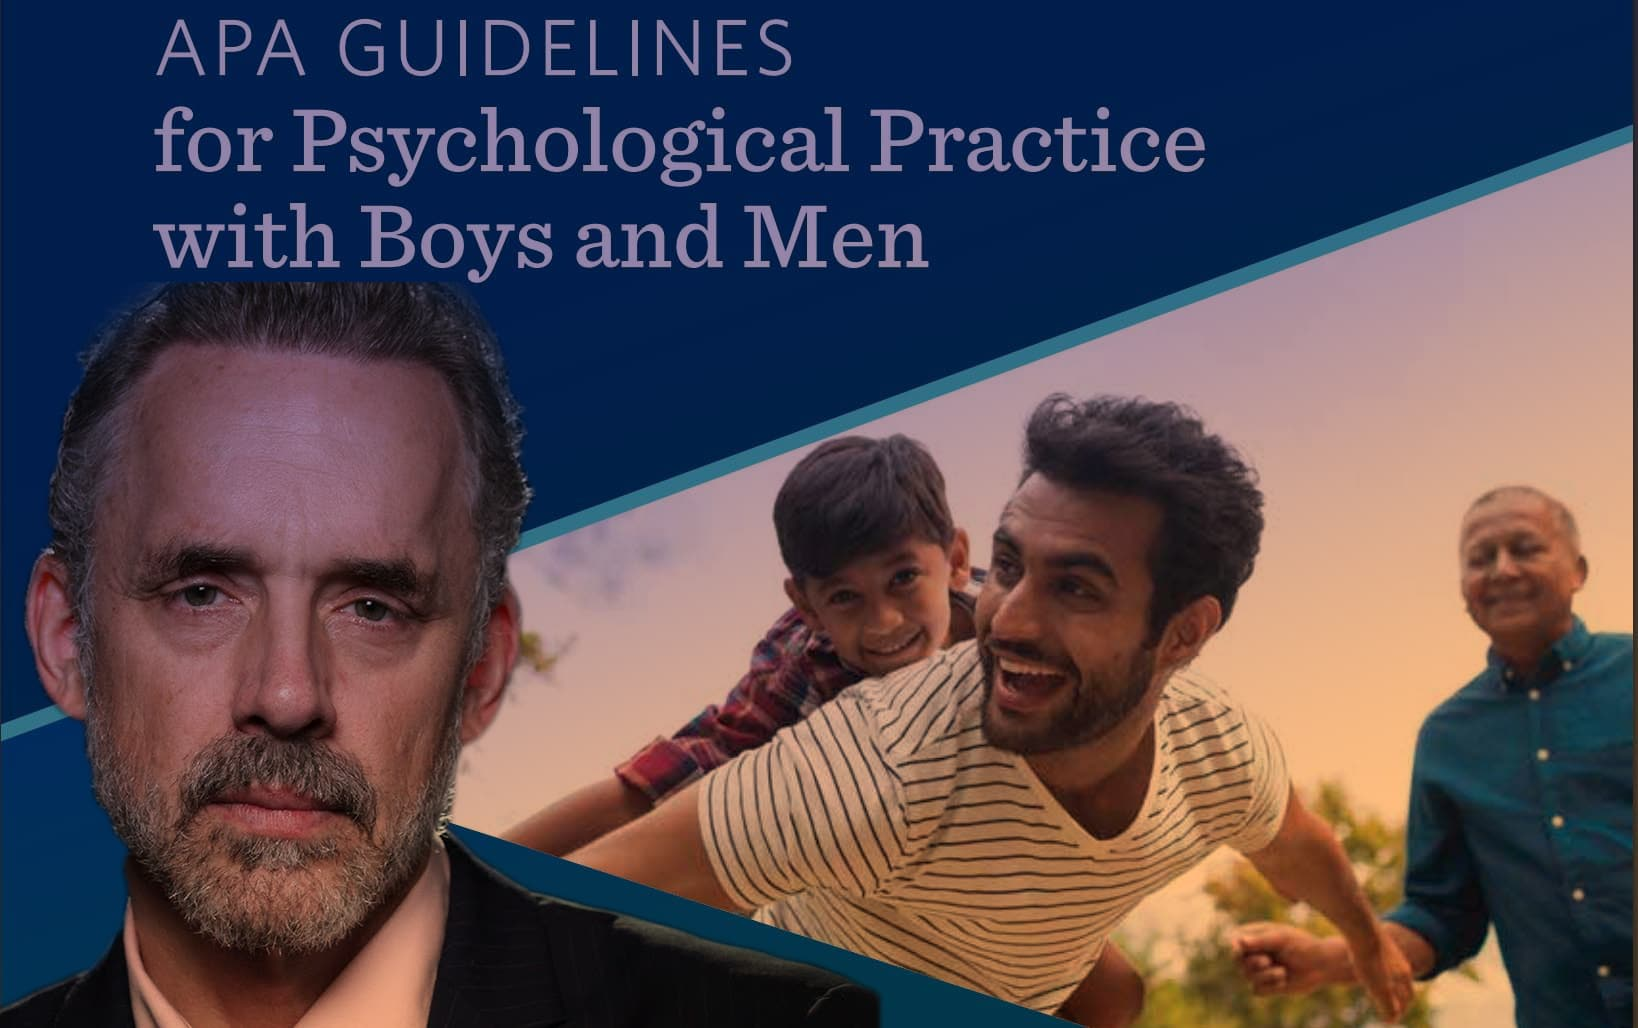 Jordan B Peterson: Comment on the APA Guidelines for the Treatment of Boys and Men 92